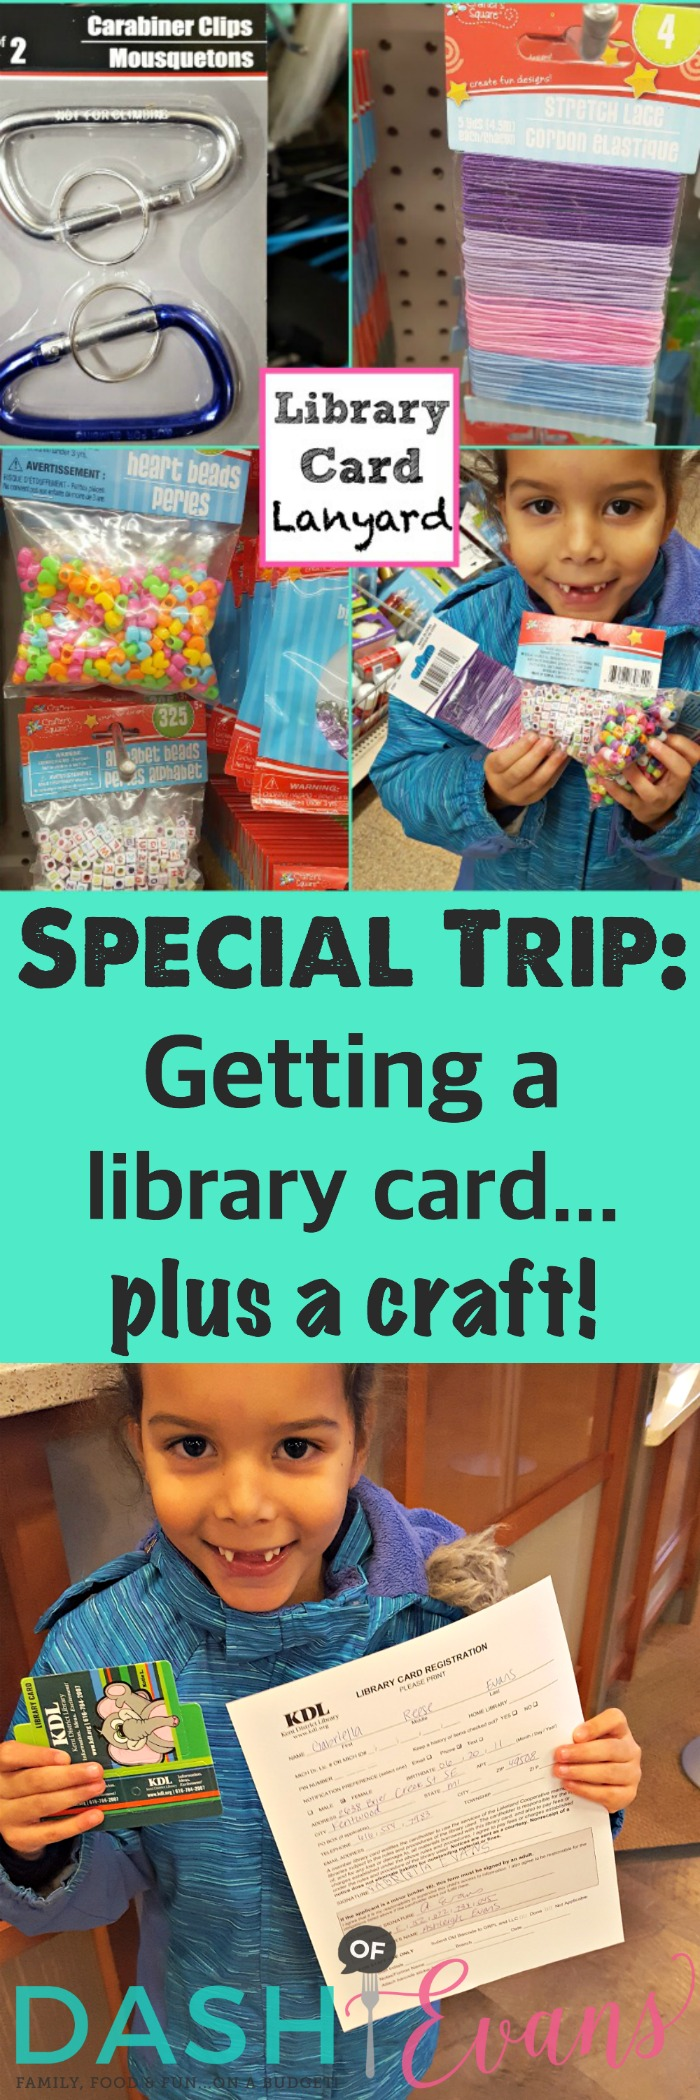 Looking for free fun for the kiddos? The library has SO much to offer! Check out this fun Dollar Tree lanyard craft too. Happy reading! via @Dashofevans